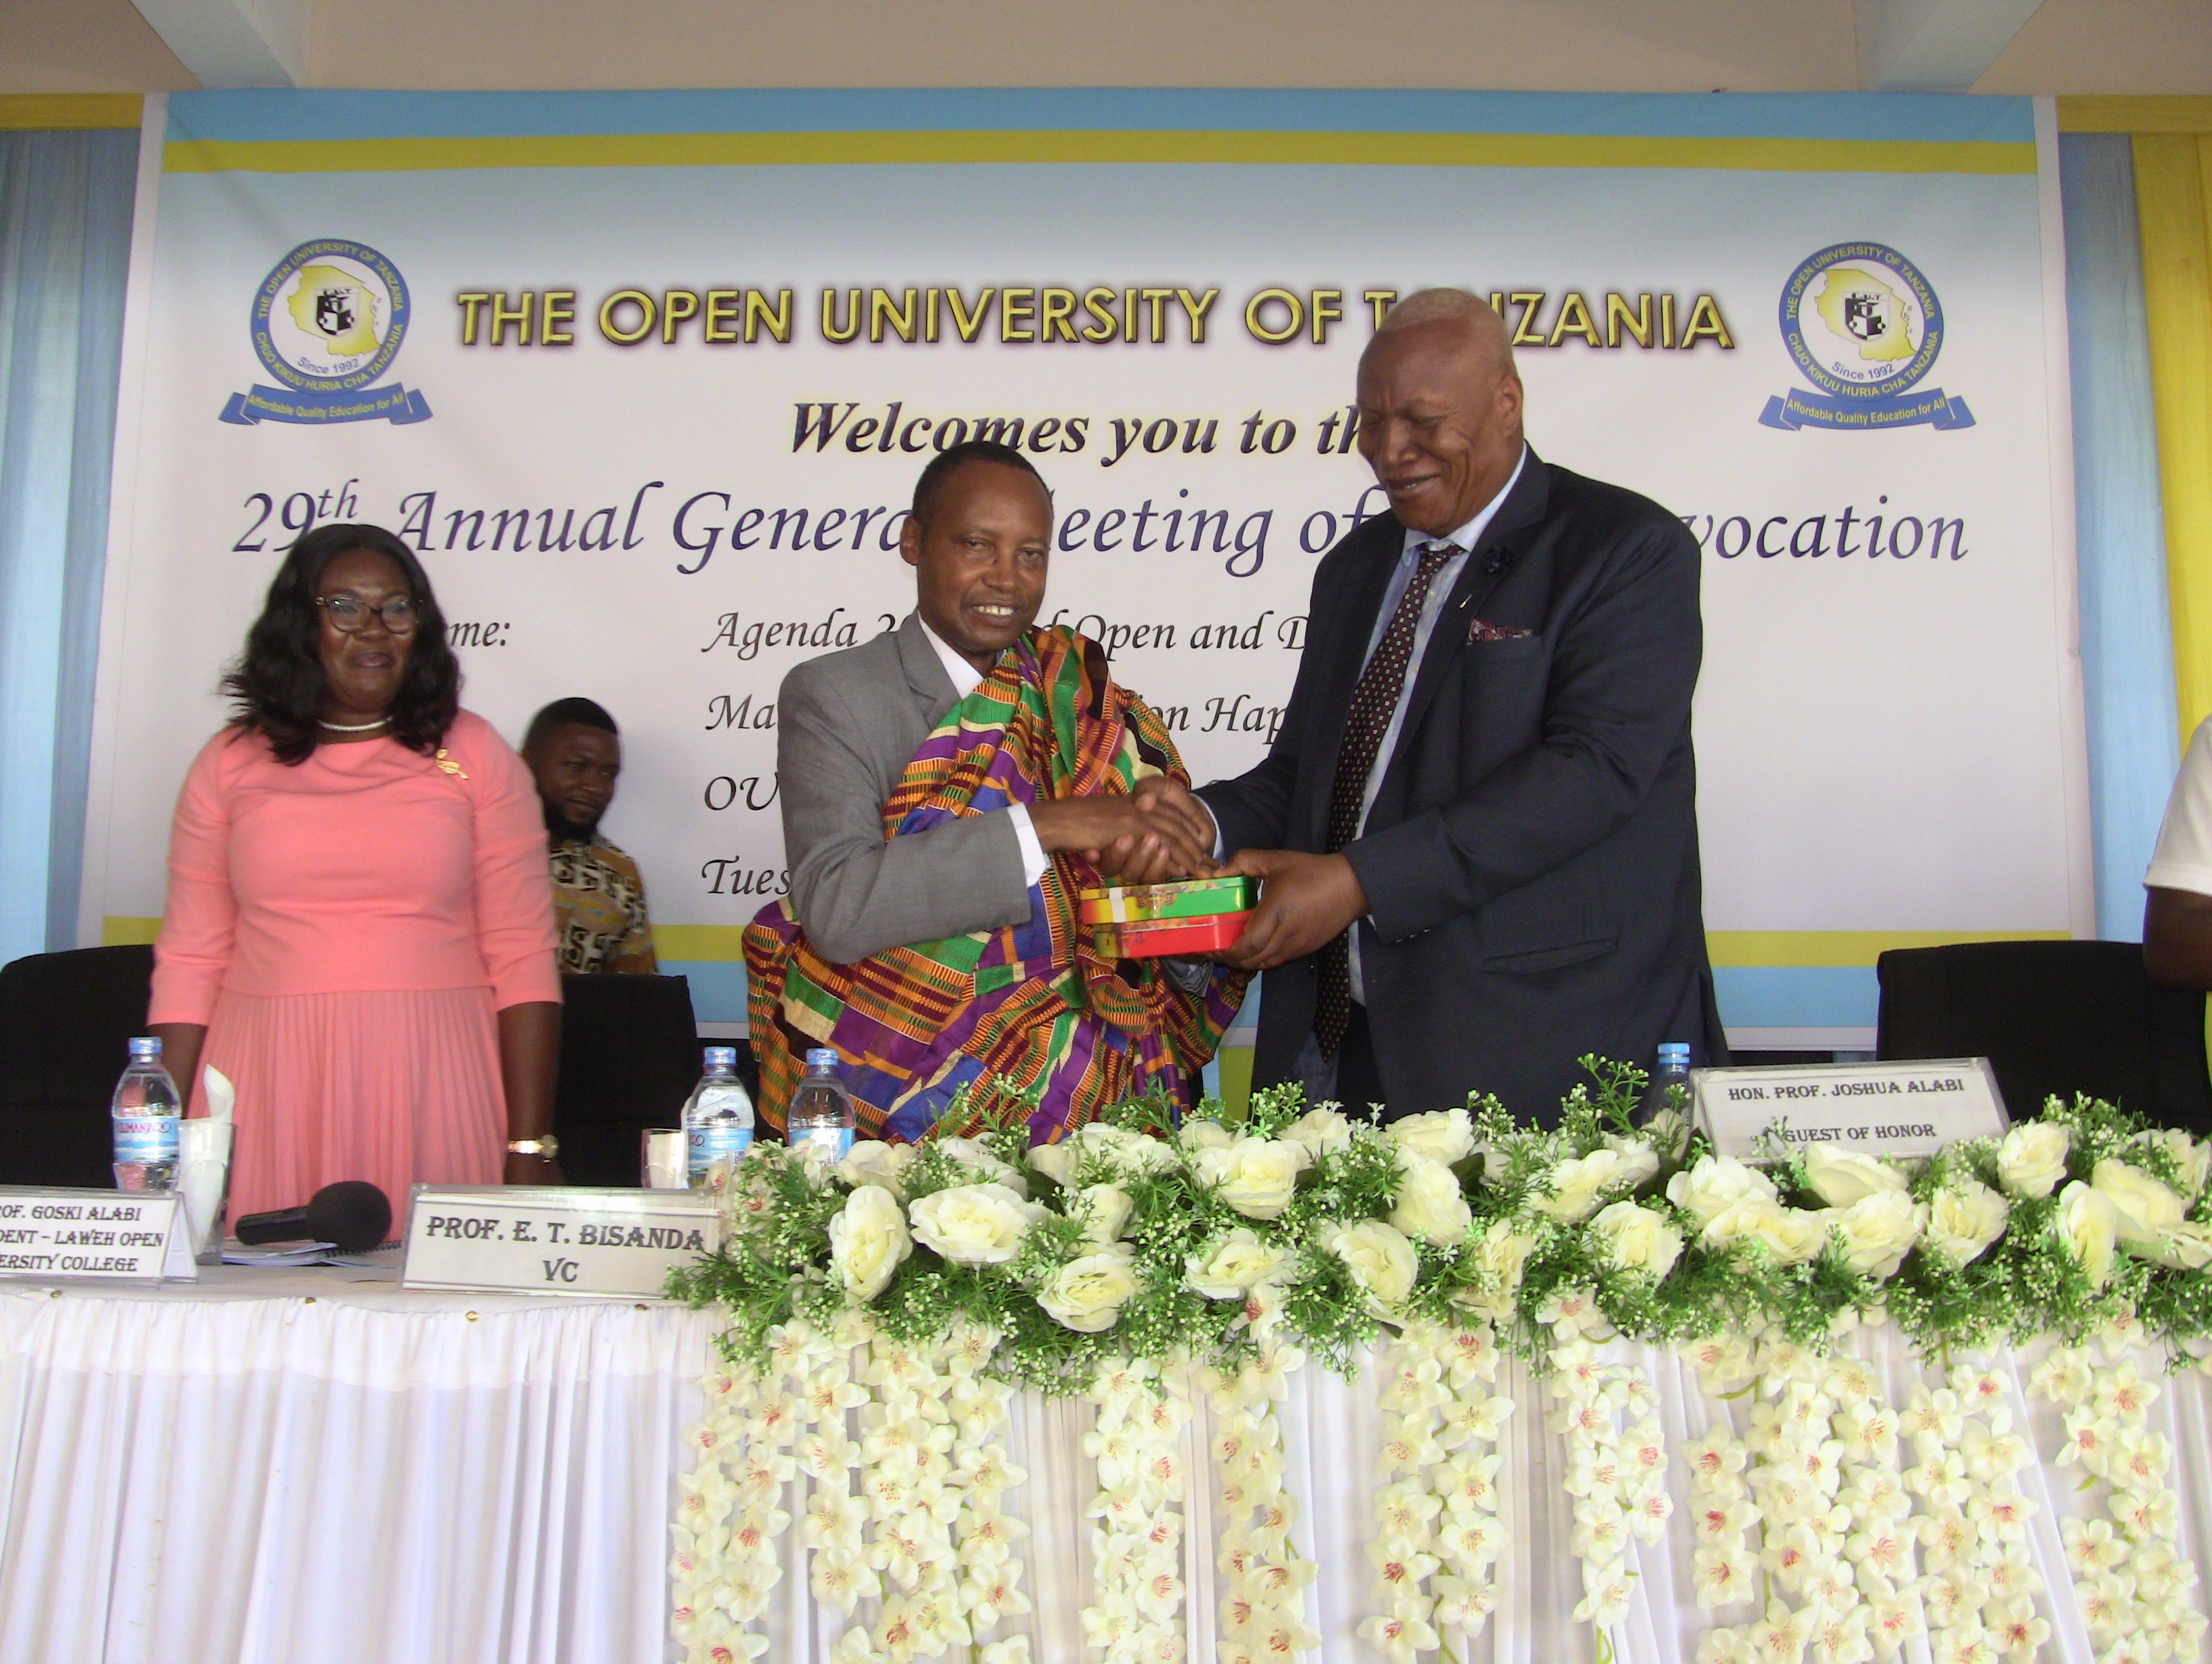 The Vice Chancellor of the Open University of Tanzania Prof. Elifas Bisanda, receives a gift from the President of Laweh Open University of Accra, Ghana Prof. Joshua Alabi during the 29th Annual General Meeting Of the Convocation